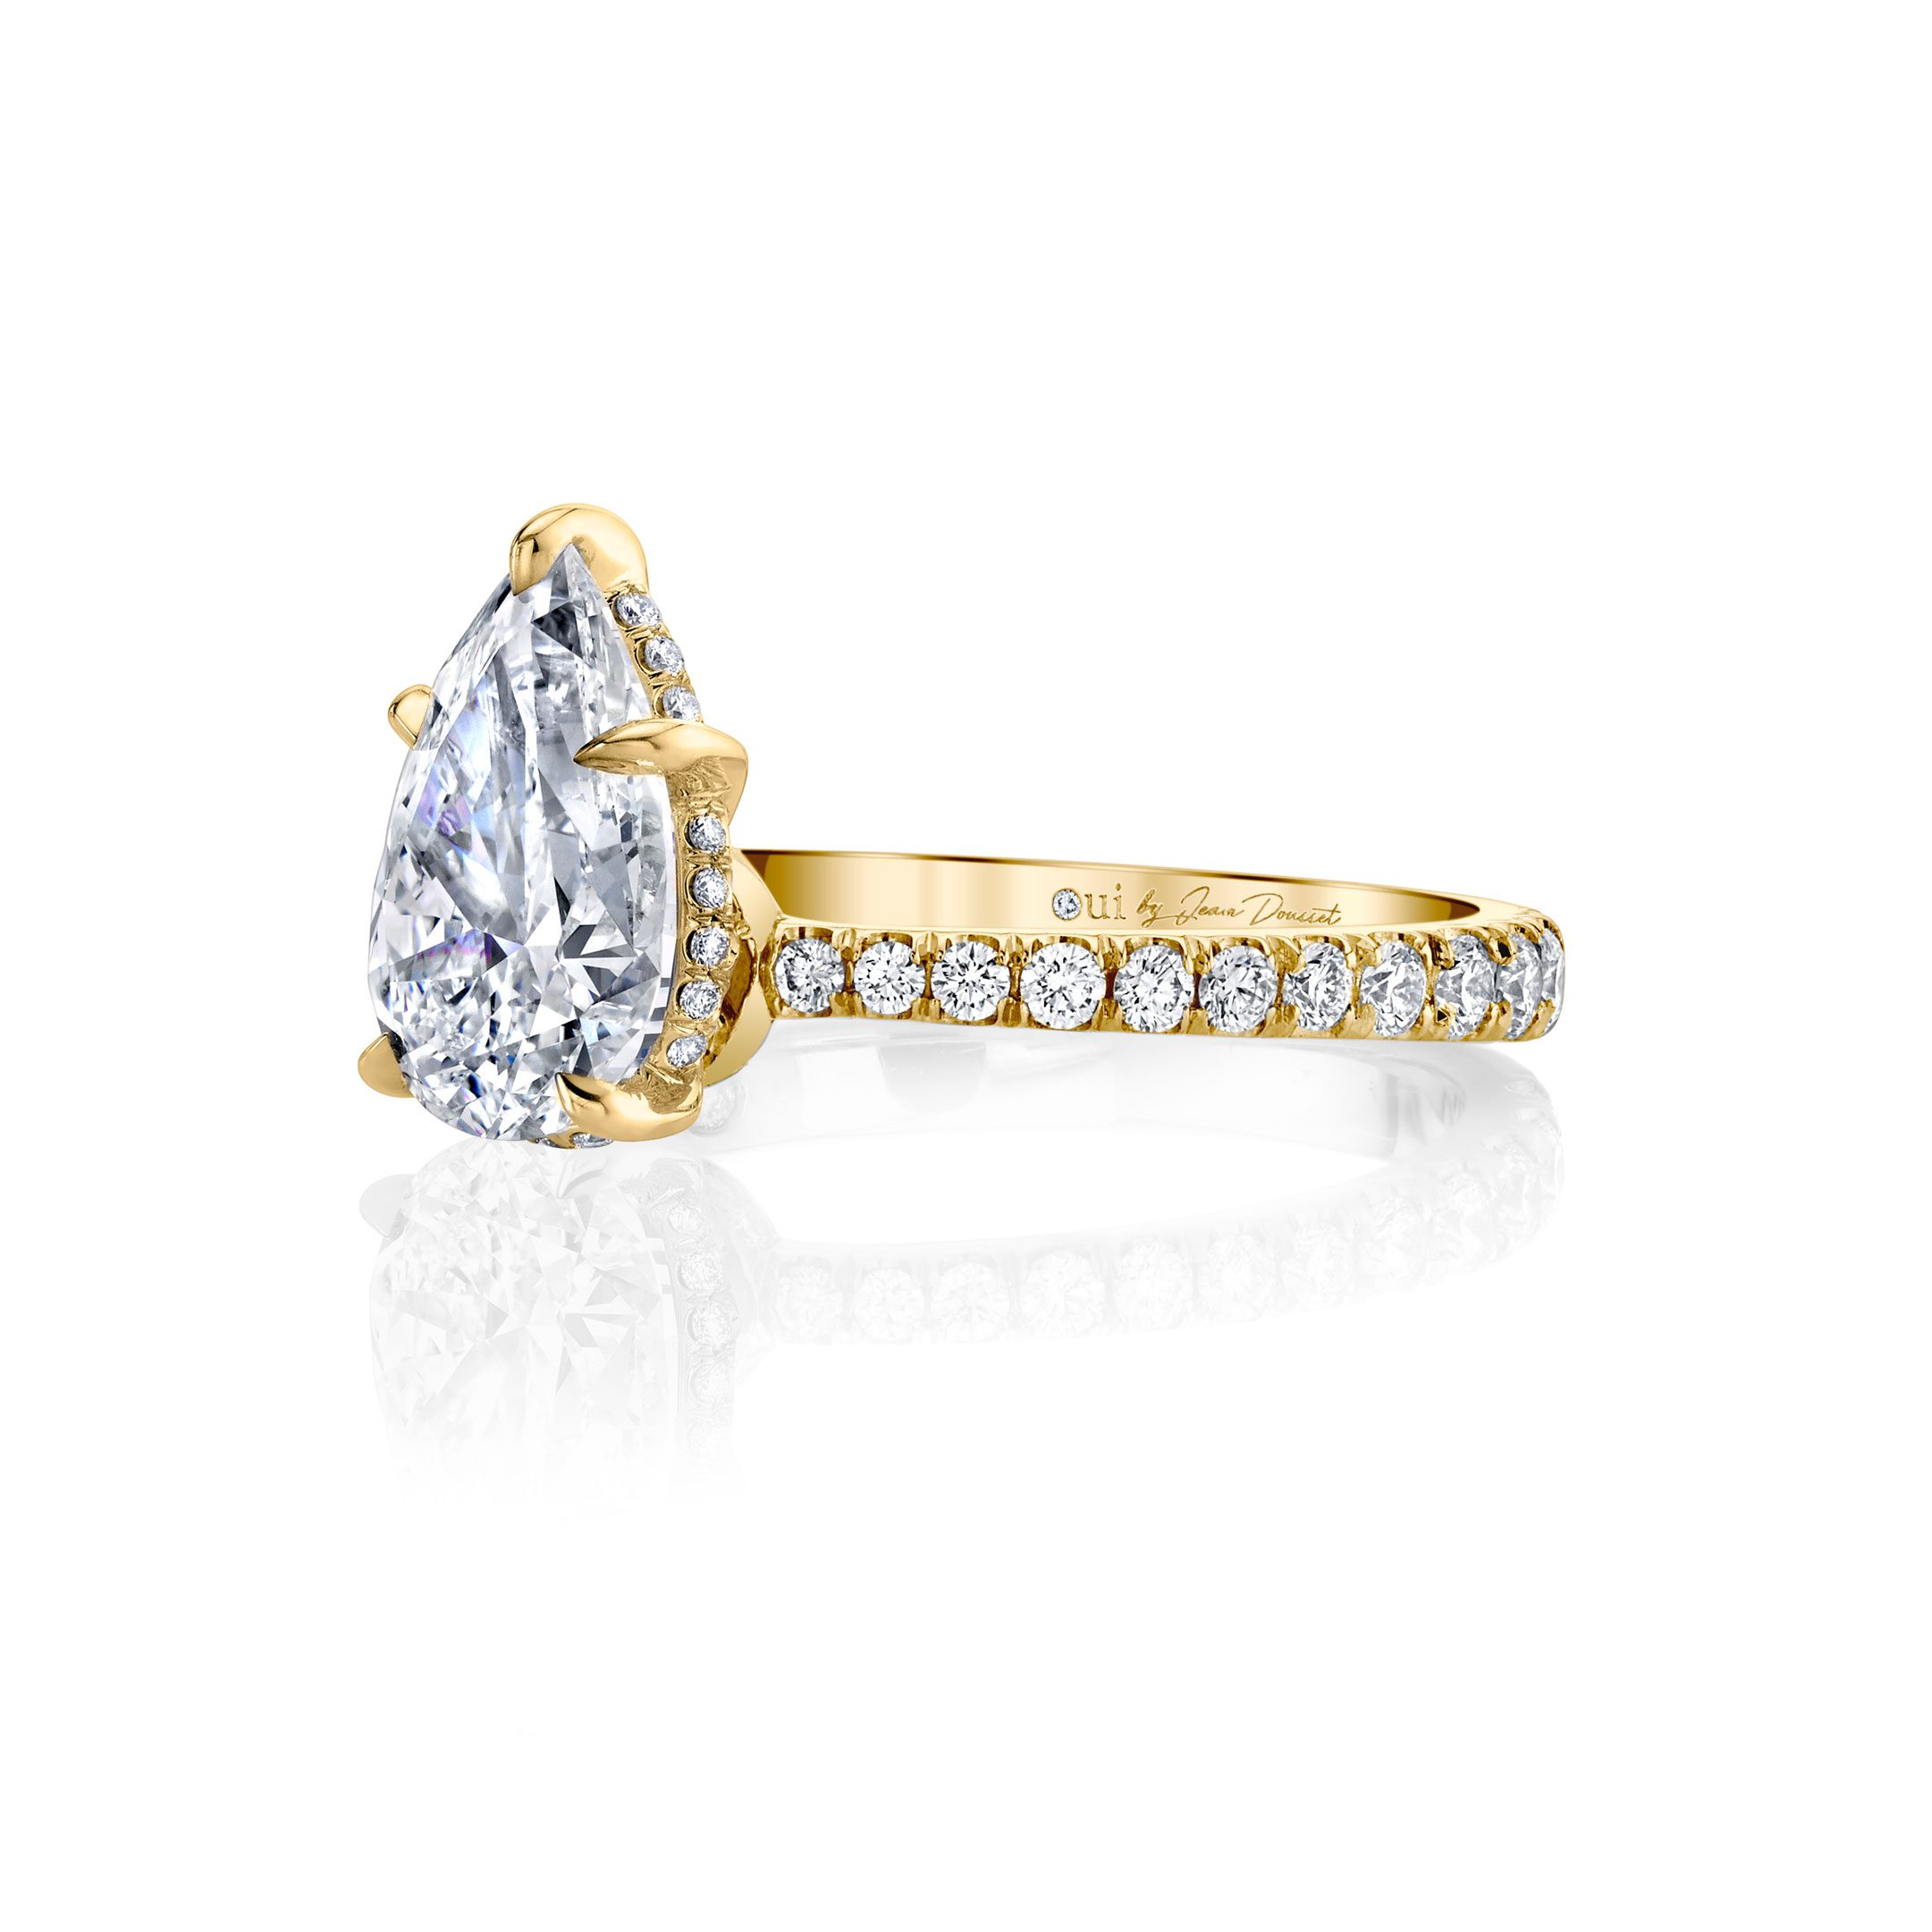 Eloise Solitaire Pear Cut Lab Grown Diamond Engagement Ring Side View with Pavé Band in 18k Yellow Gold Ring Side View